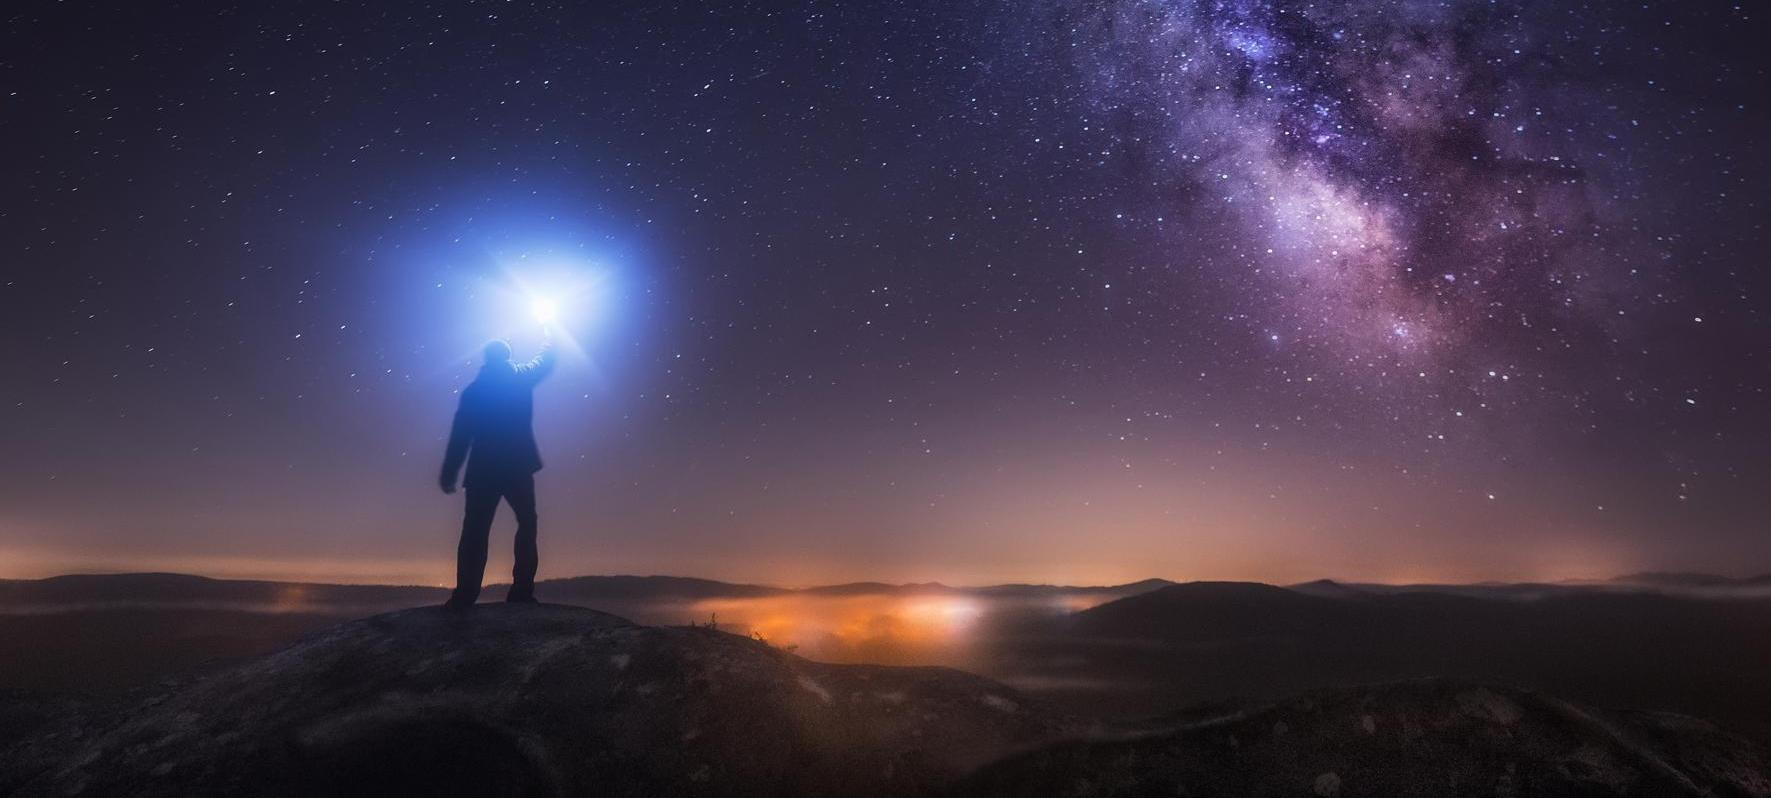 600705680,Man Looking at Milky Way and lightning flash in night sky